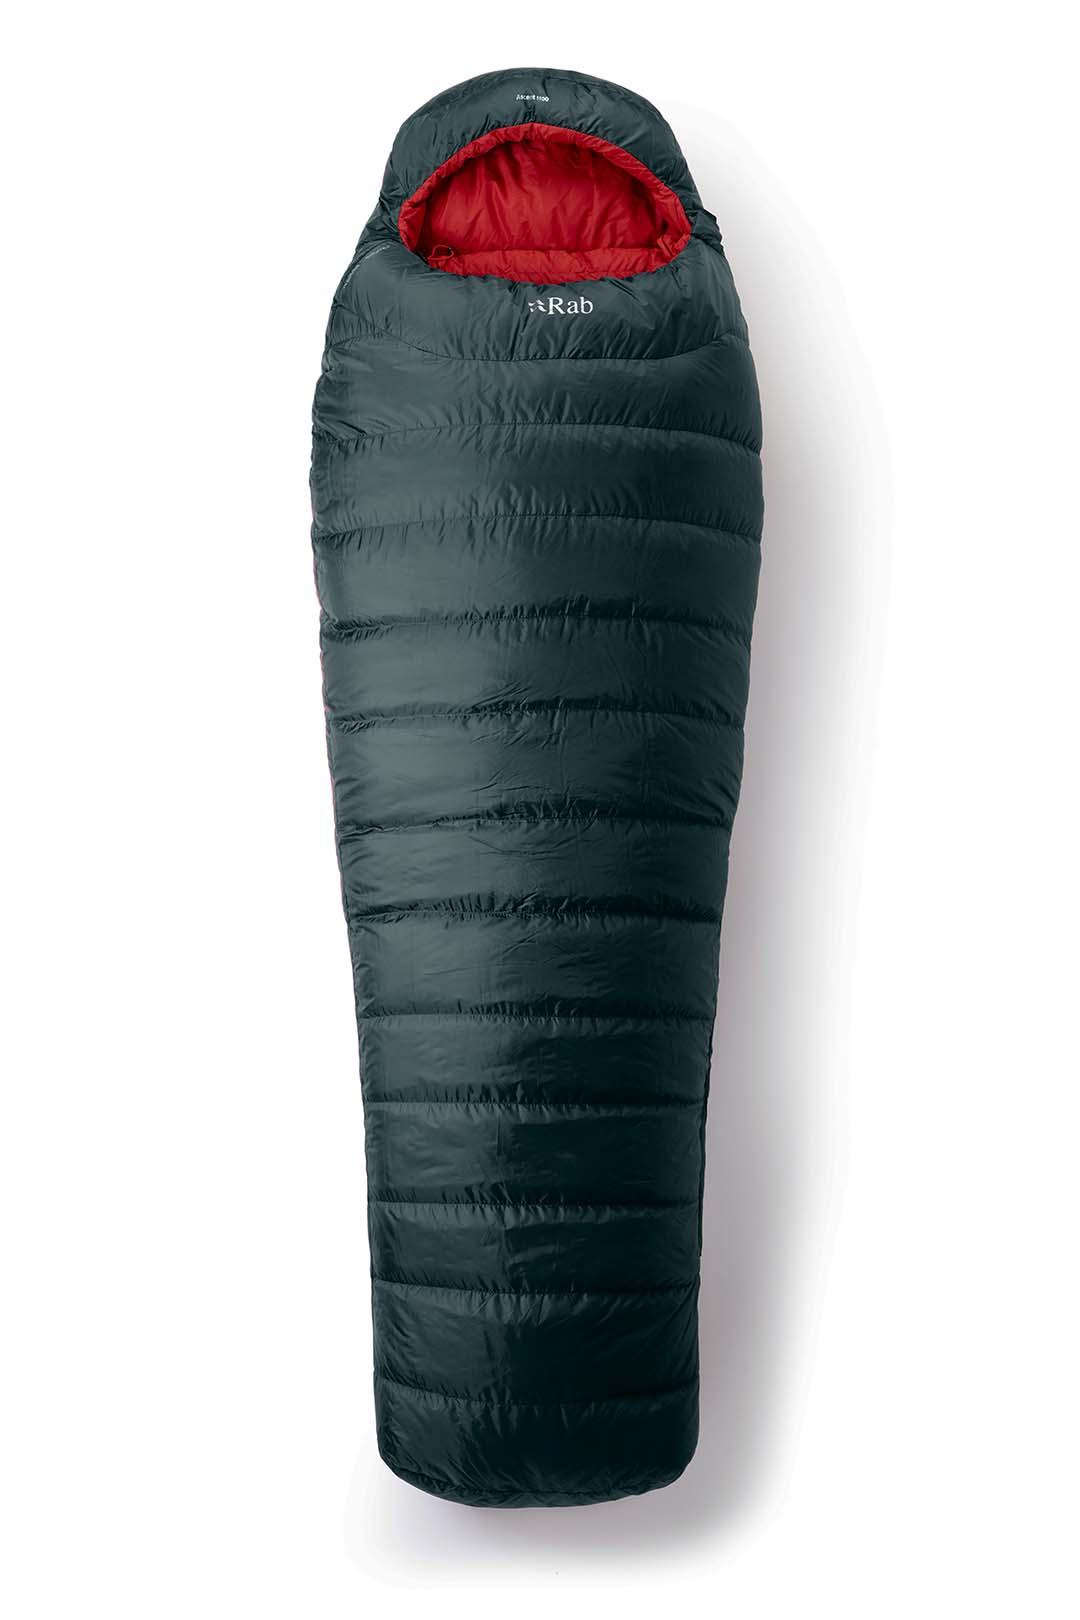 Rab Ascent 1100 Down Sleeping Bag